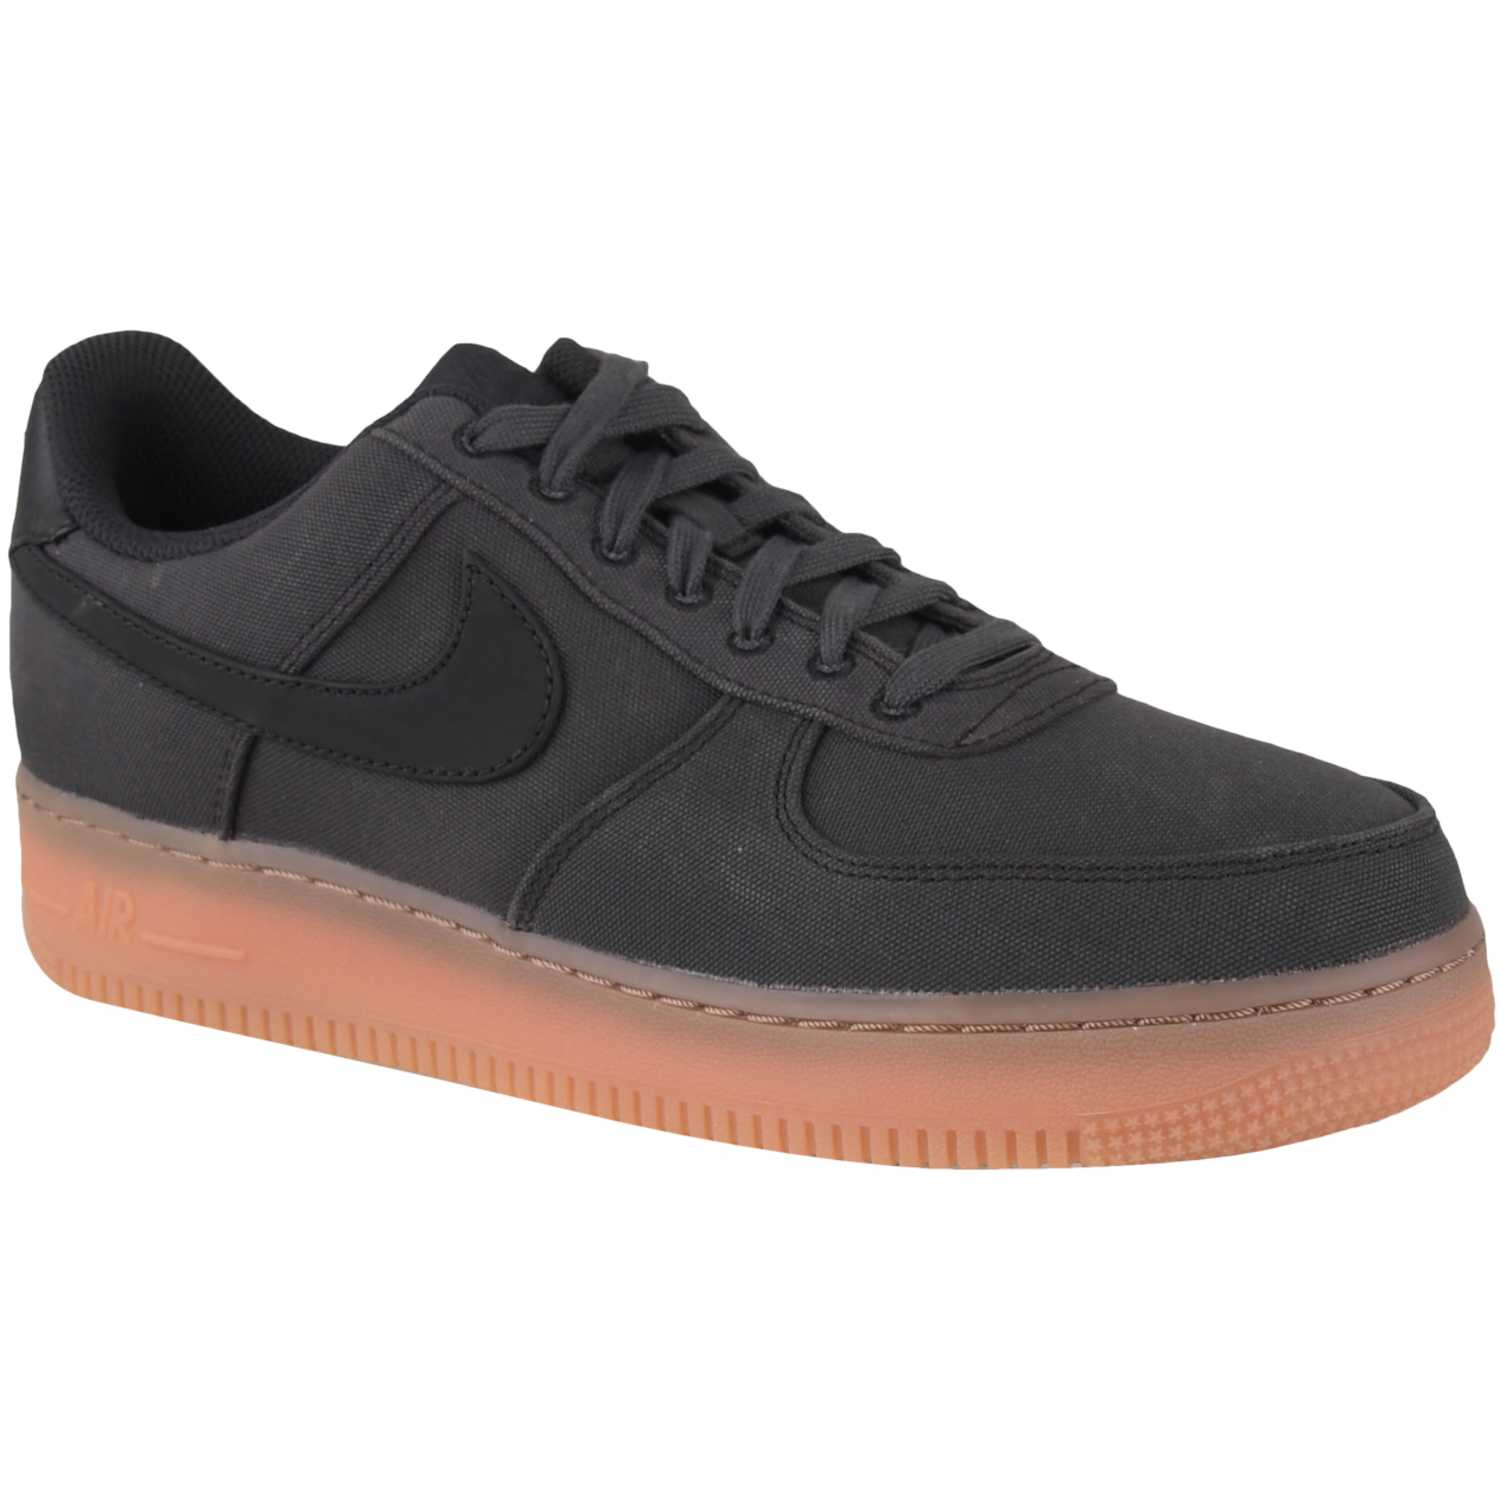 sneakers for cheap 8b09f 10ac7 Zapatilla de Hombre Nike Negro  mostaza air force 1  07 lv8 style